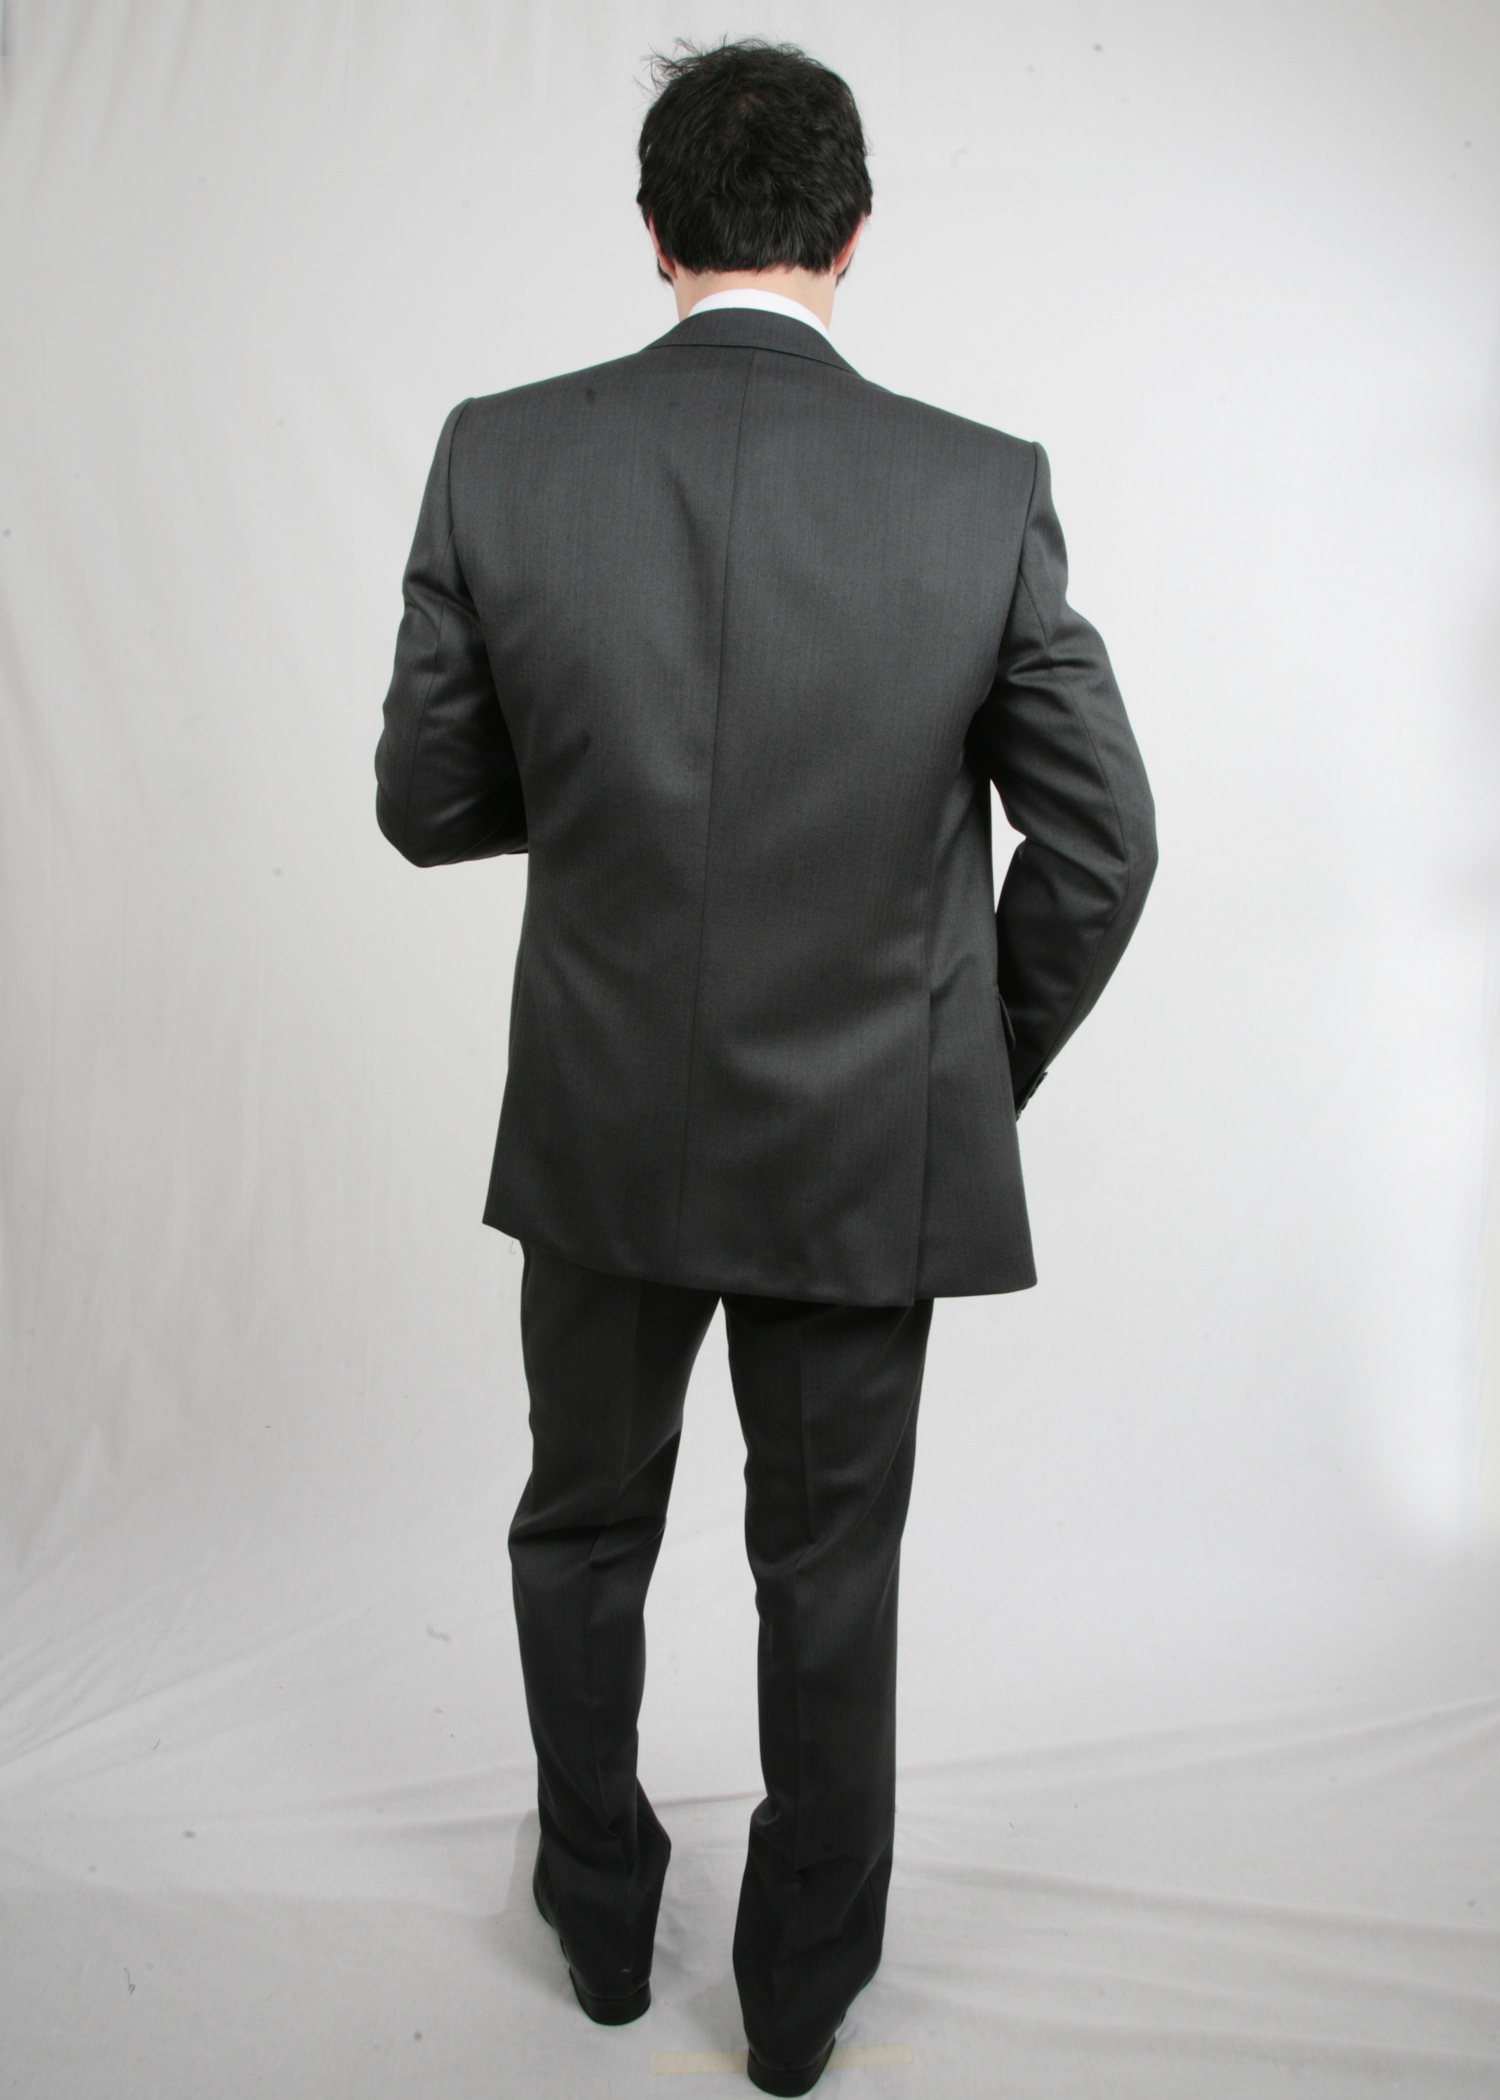 Short Grey Morning Suit Hire